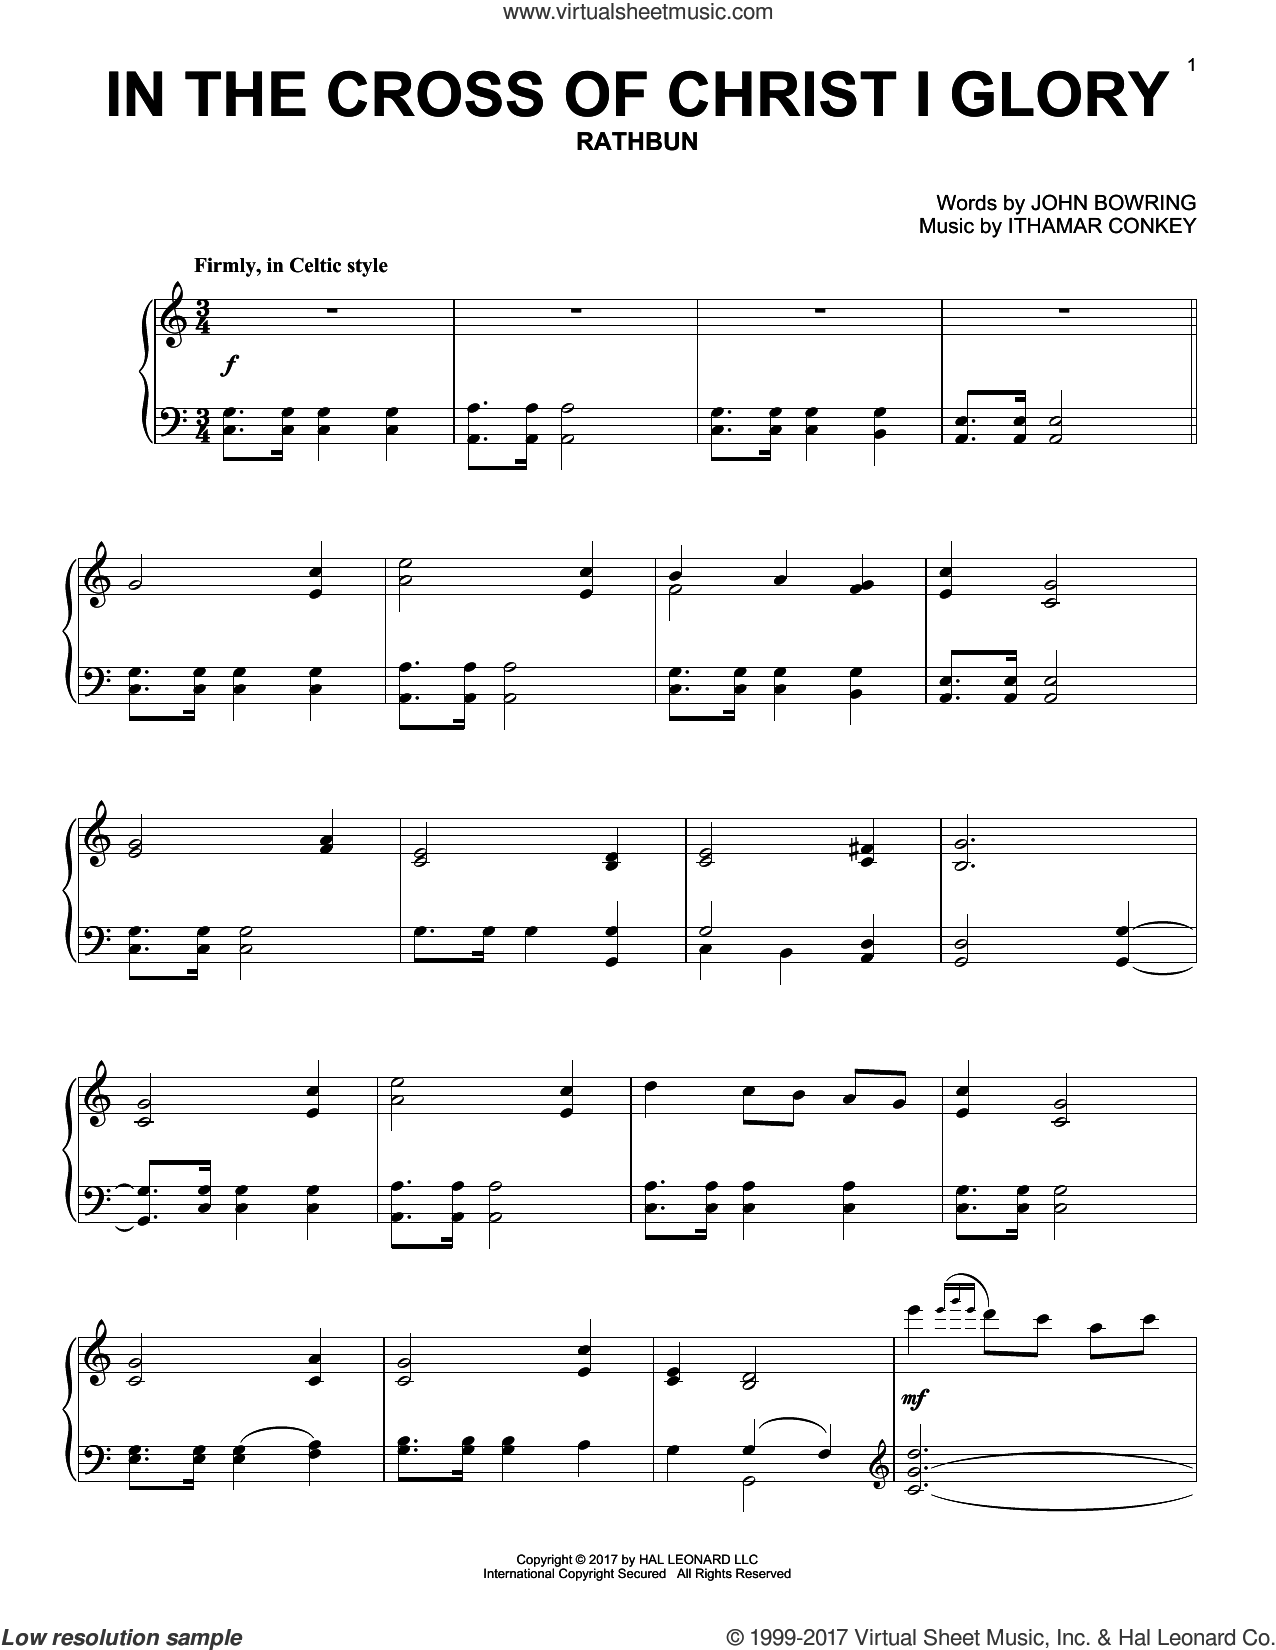 In The Cross Of Christ I Glory sheet music for piano solo by John Bowring, John Leavitt and Ithamar Conkey, intermediate skill level